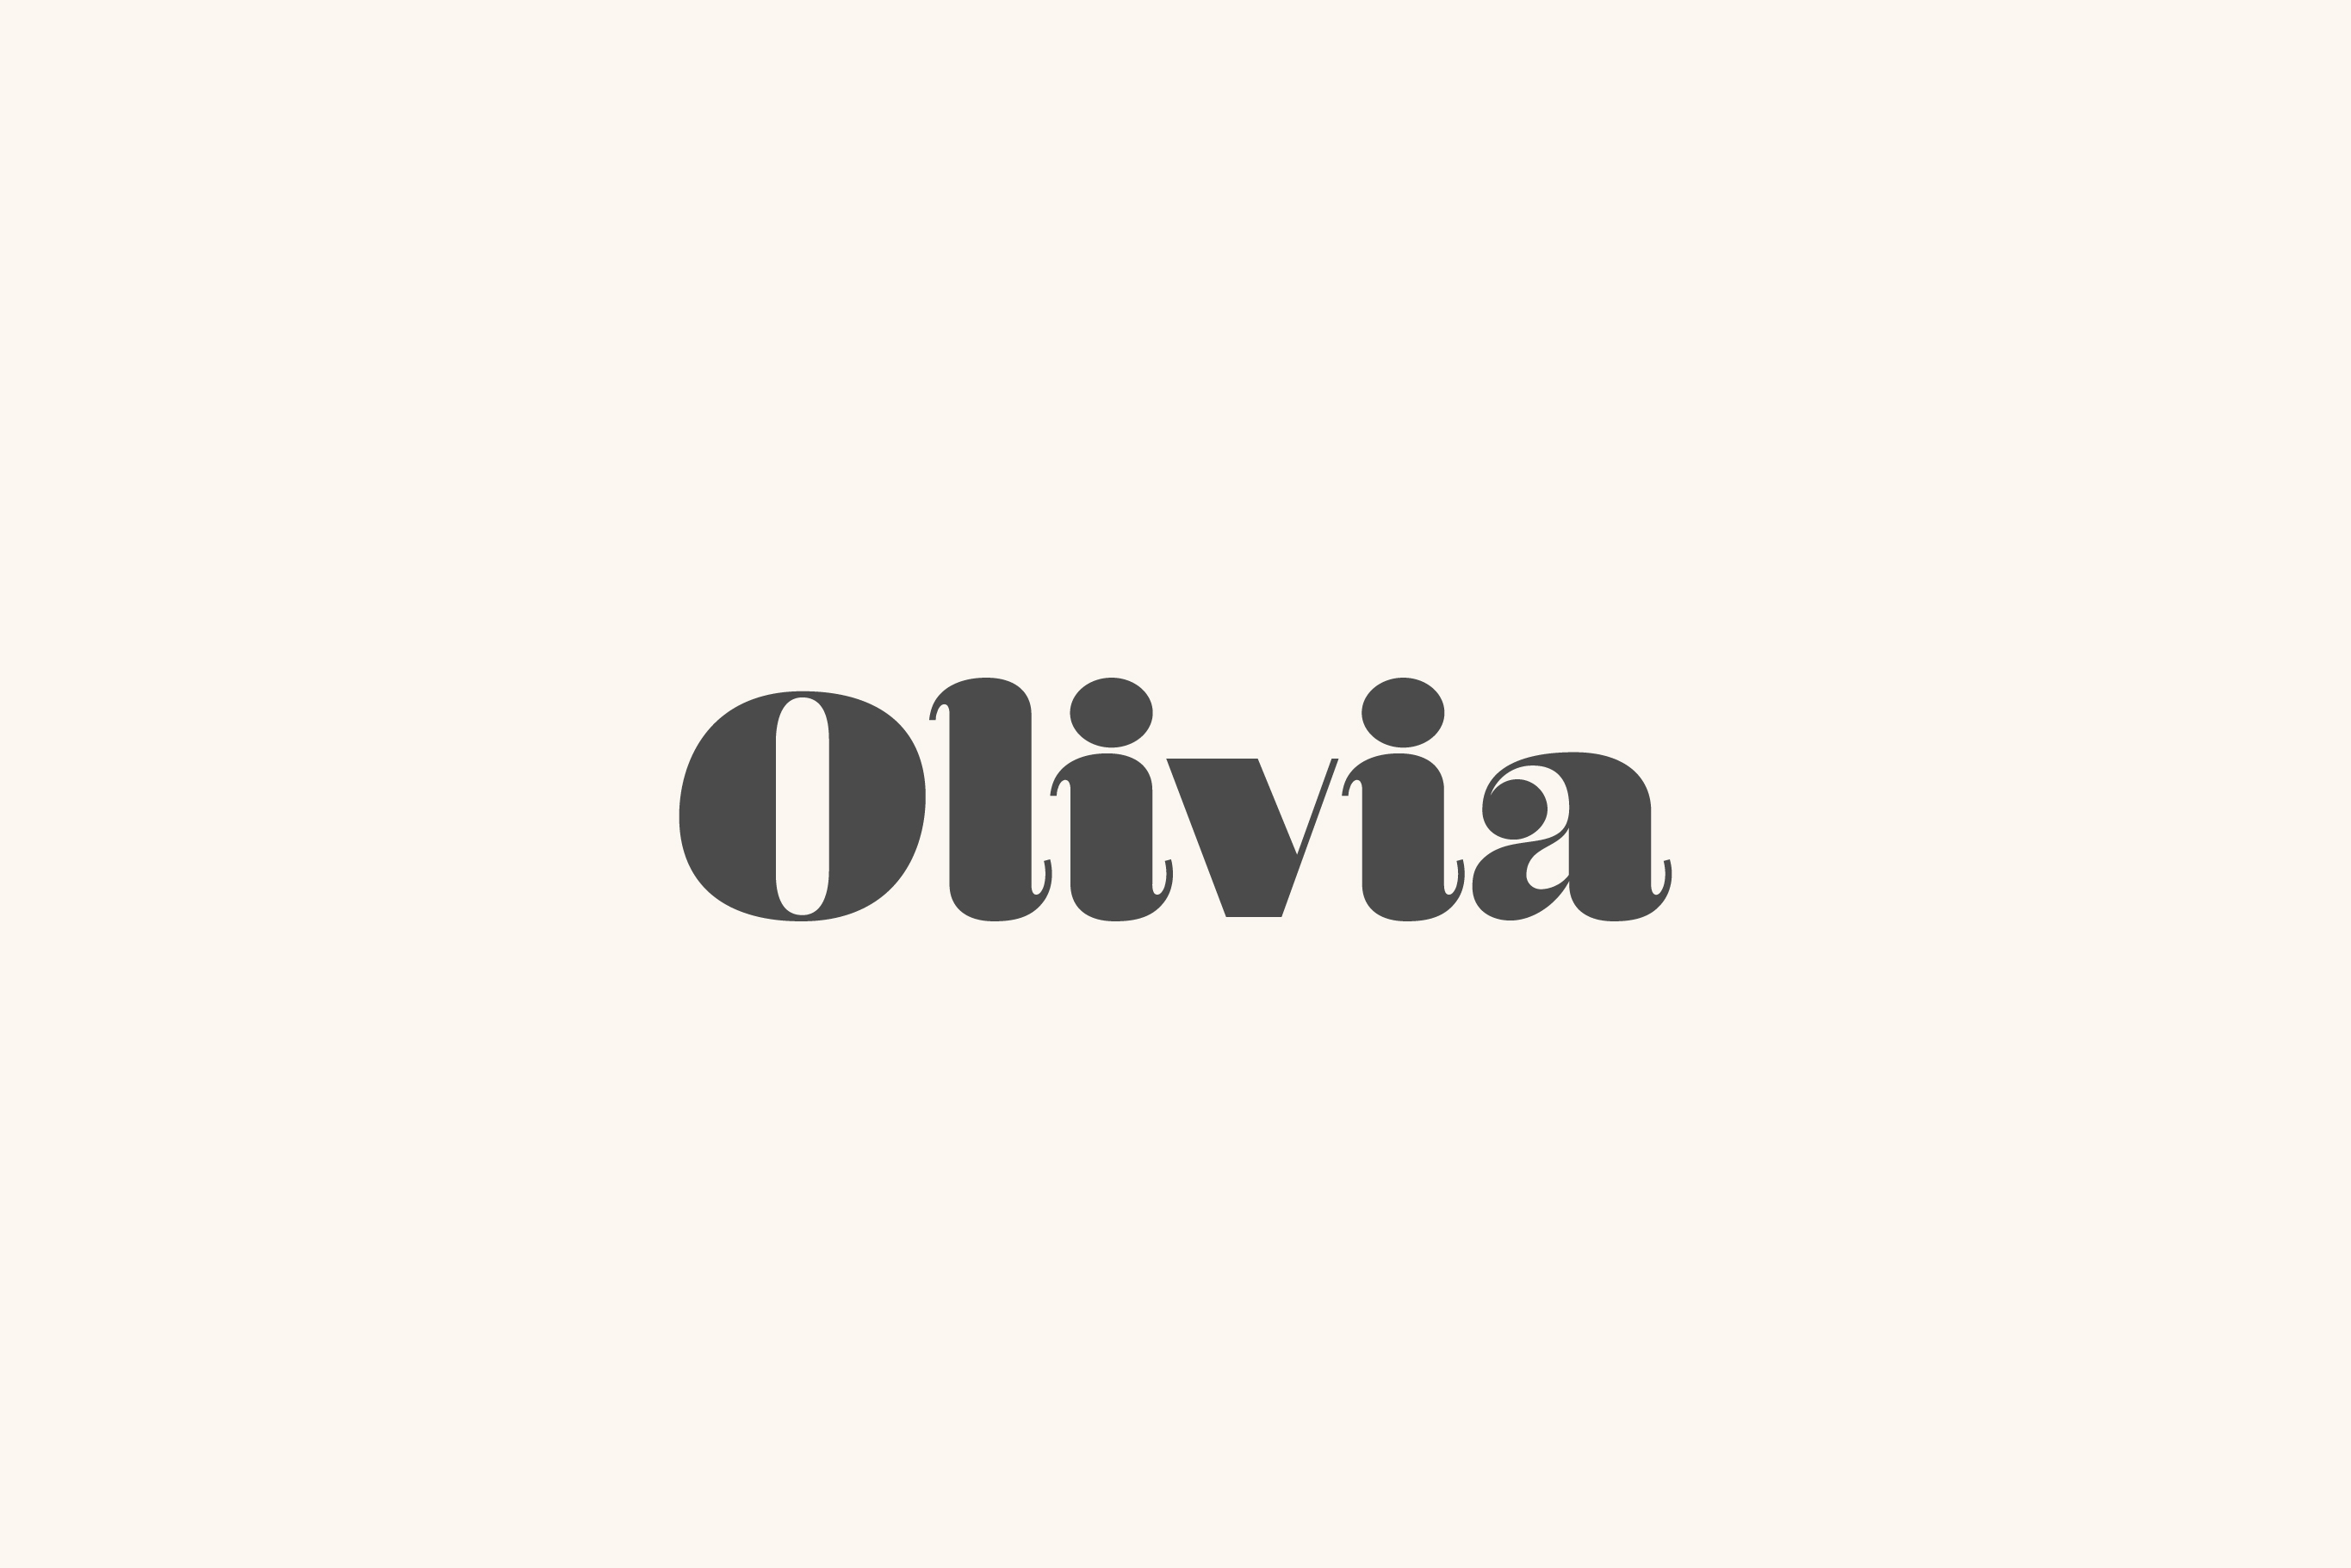 Olivia - A Curvy Typeface example image 1